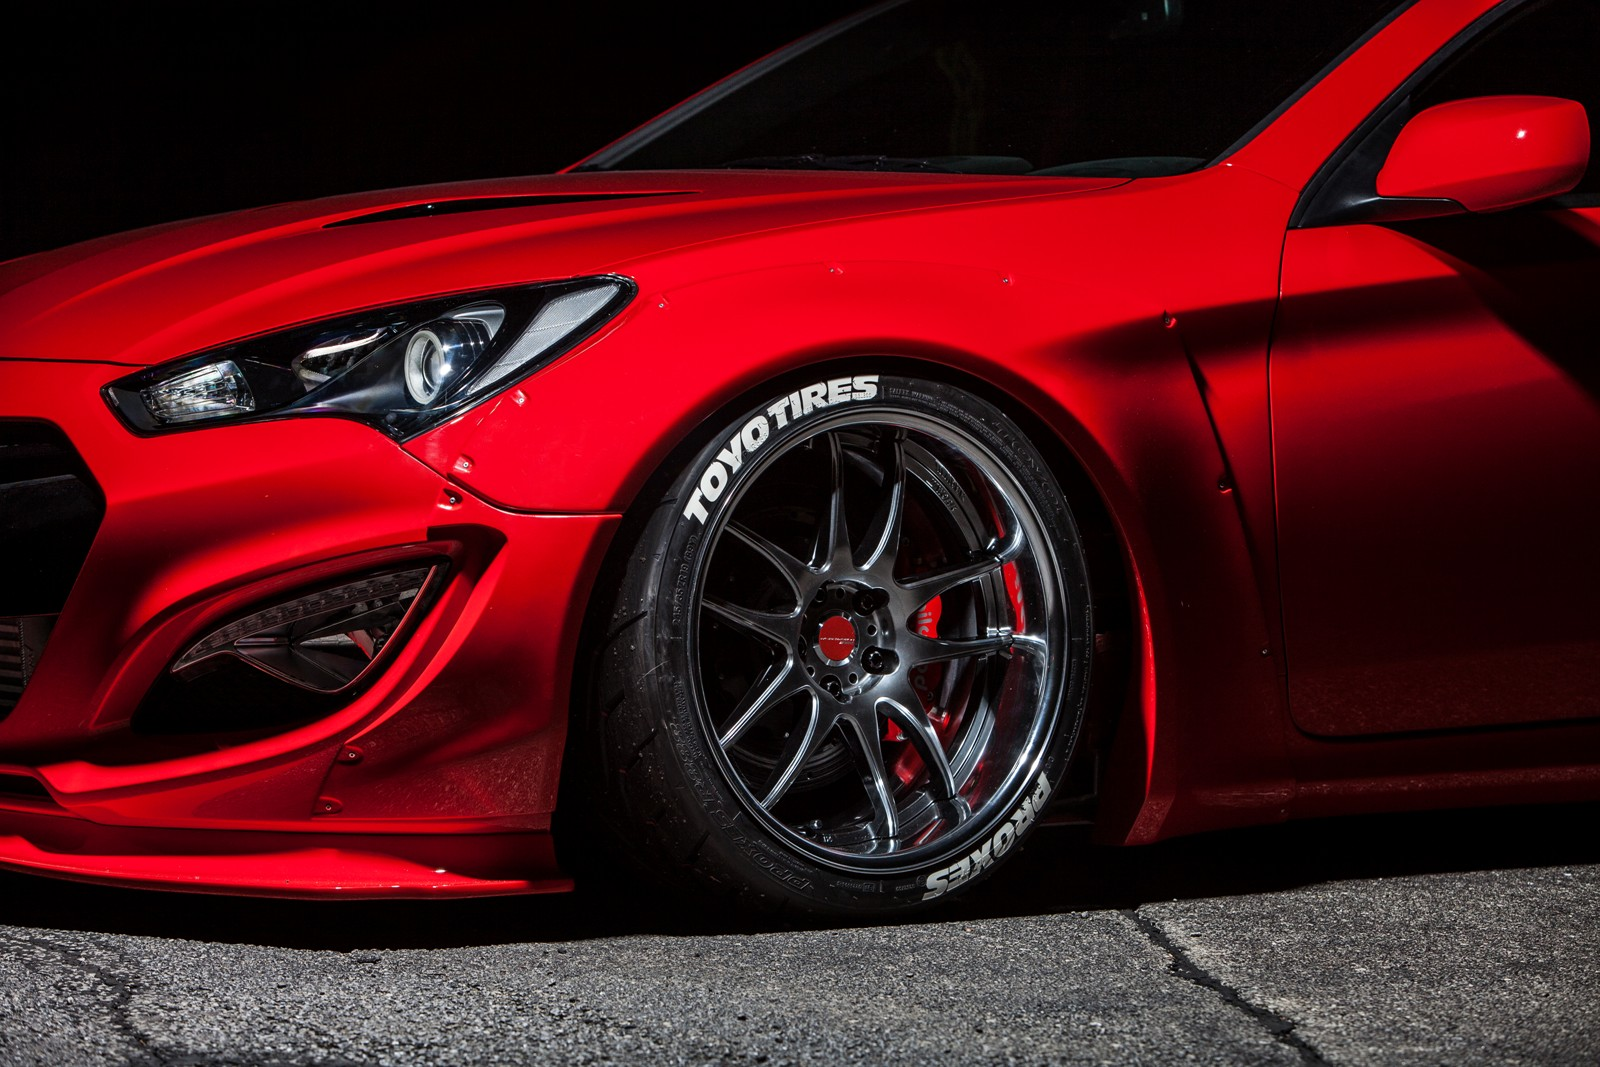 Hyundai Teams Up With Blood Type Racing to Debut Underground Racing Genesis at SEMA SHOW